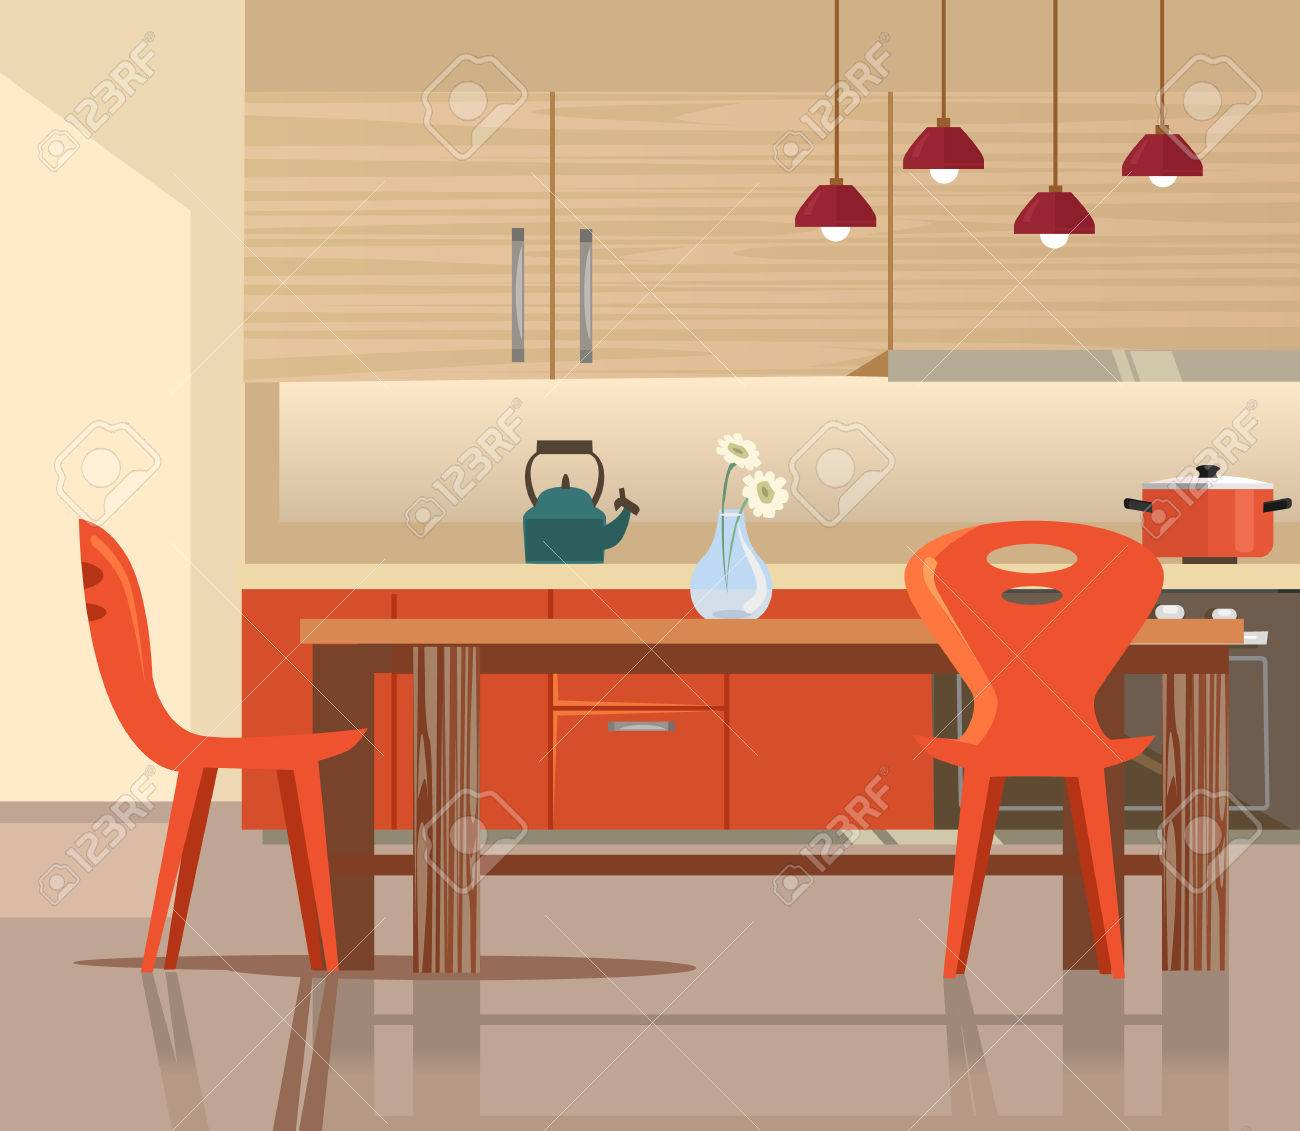 Home Kitchen Interior Vector Flat Cartoon Illustration Royalty Free